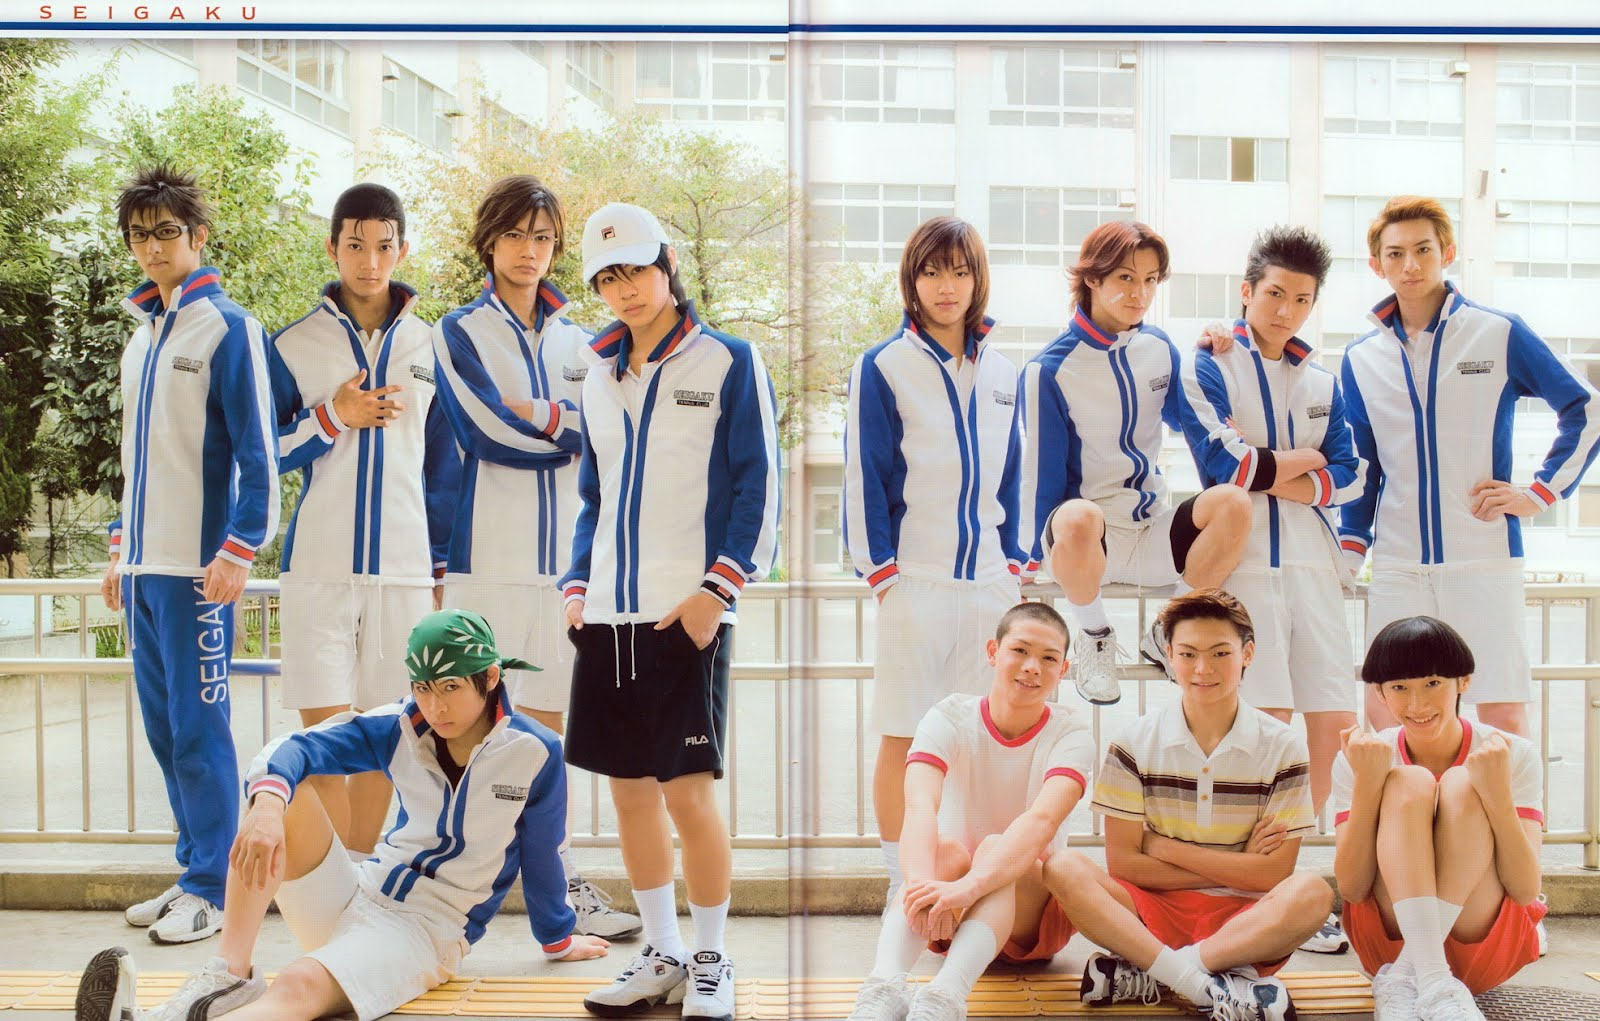 tenimyu 2nd season rokkaku vs seigaku